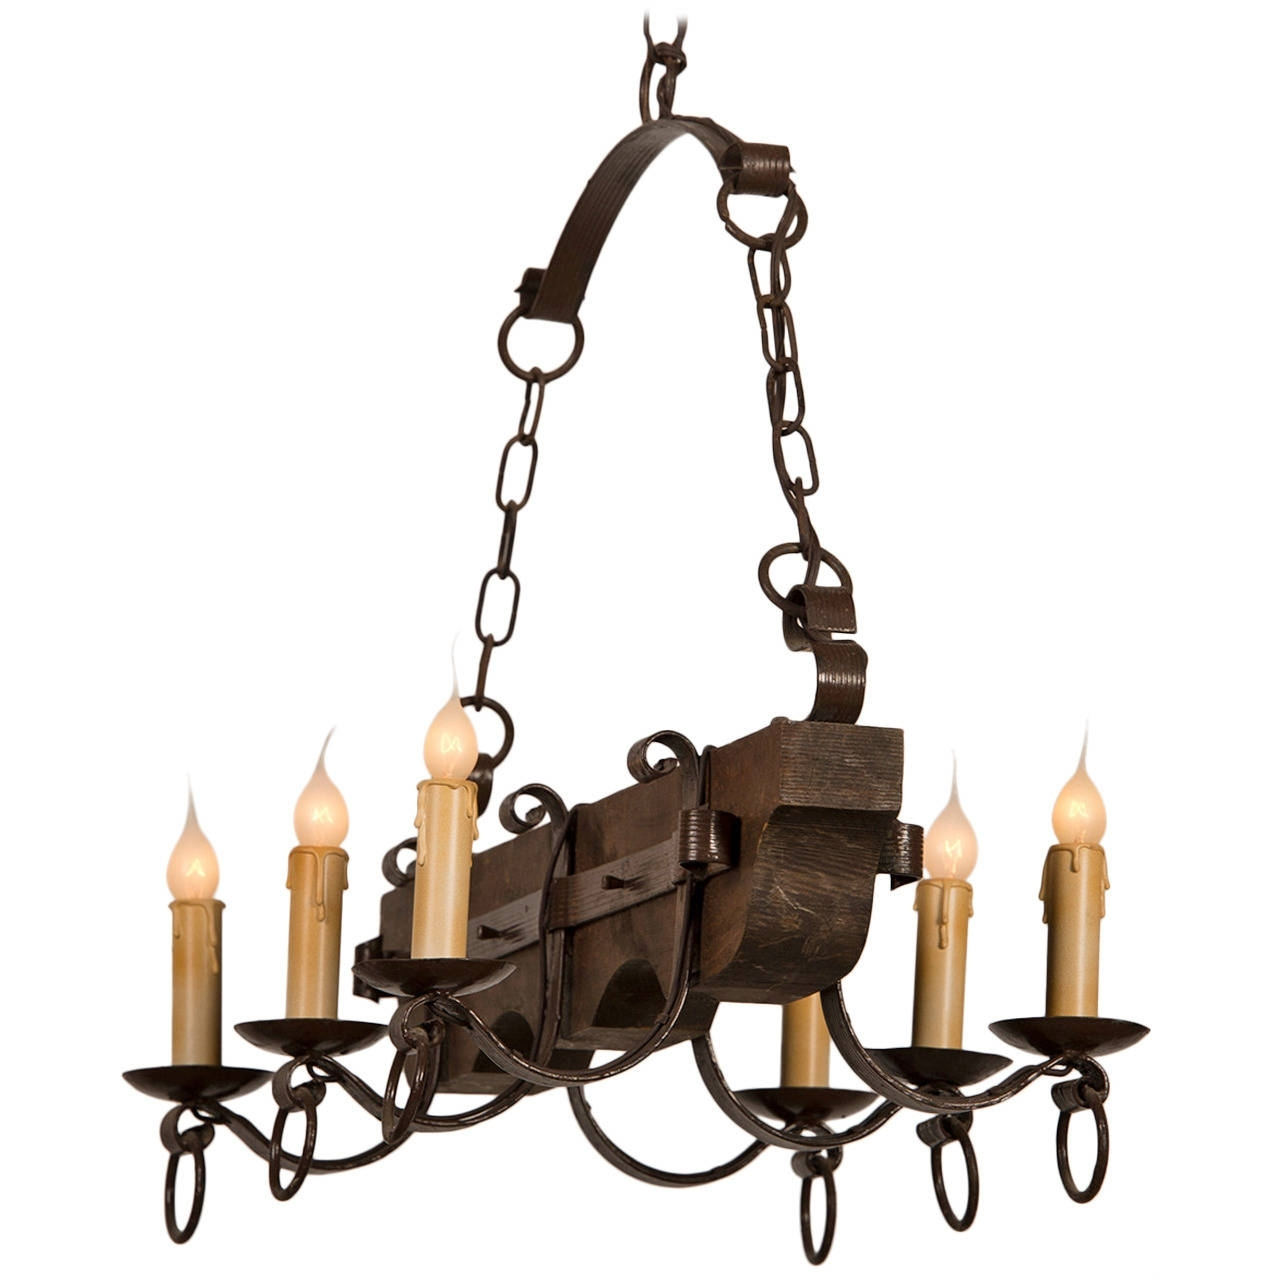 Widely Used Rustic Kitchen Or Dining Room Lighting Ideas With Vertical Wooden With Regard To Vintage Wrought Iron Chandelier (View 13 of 15)